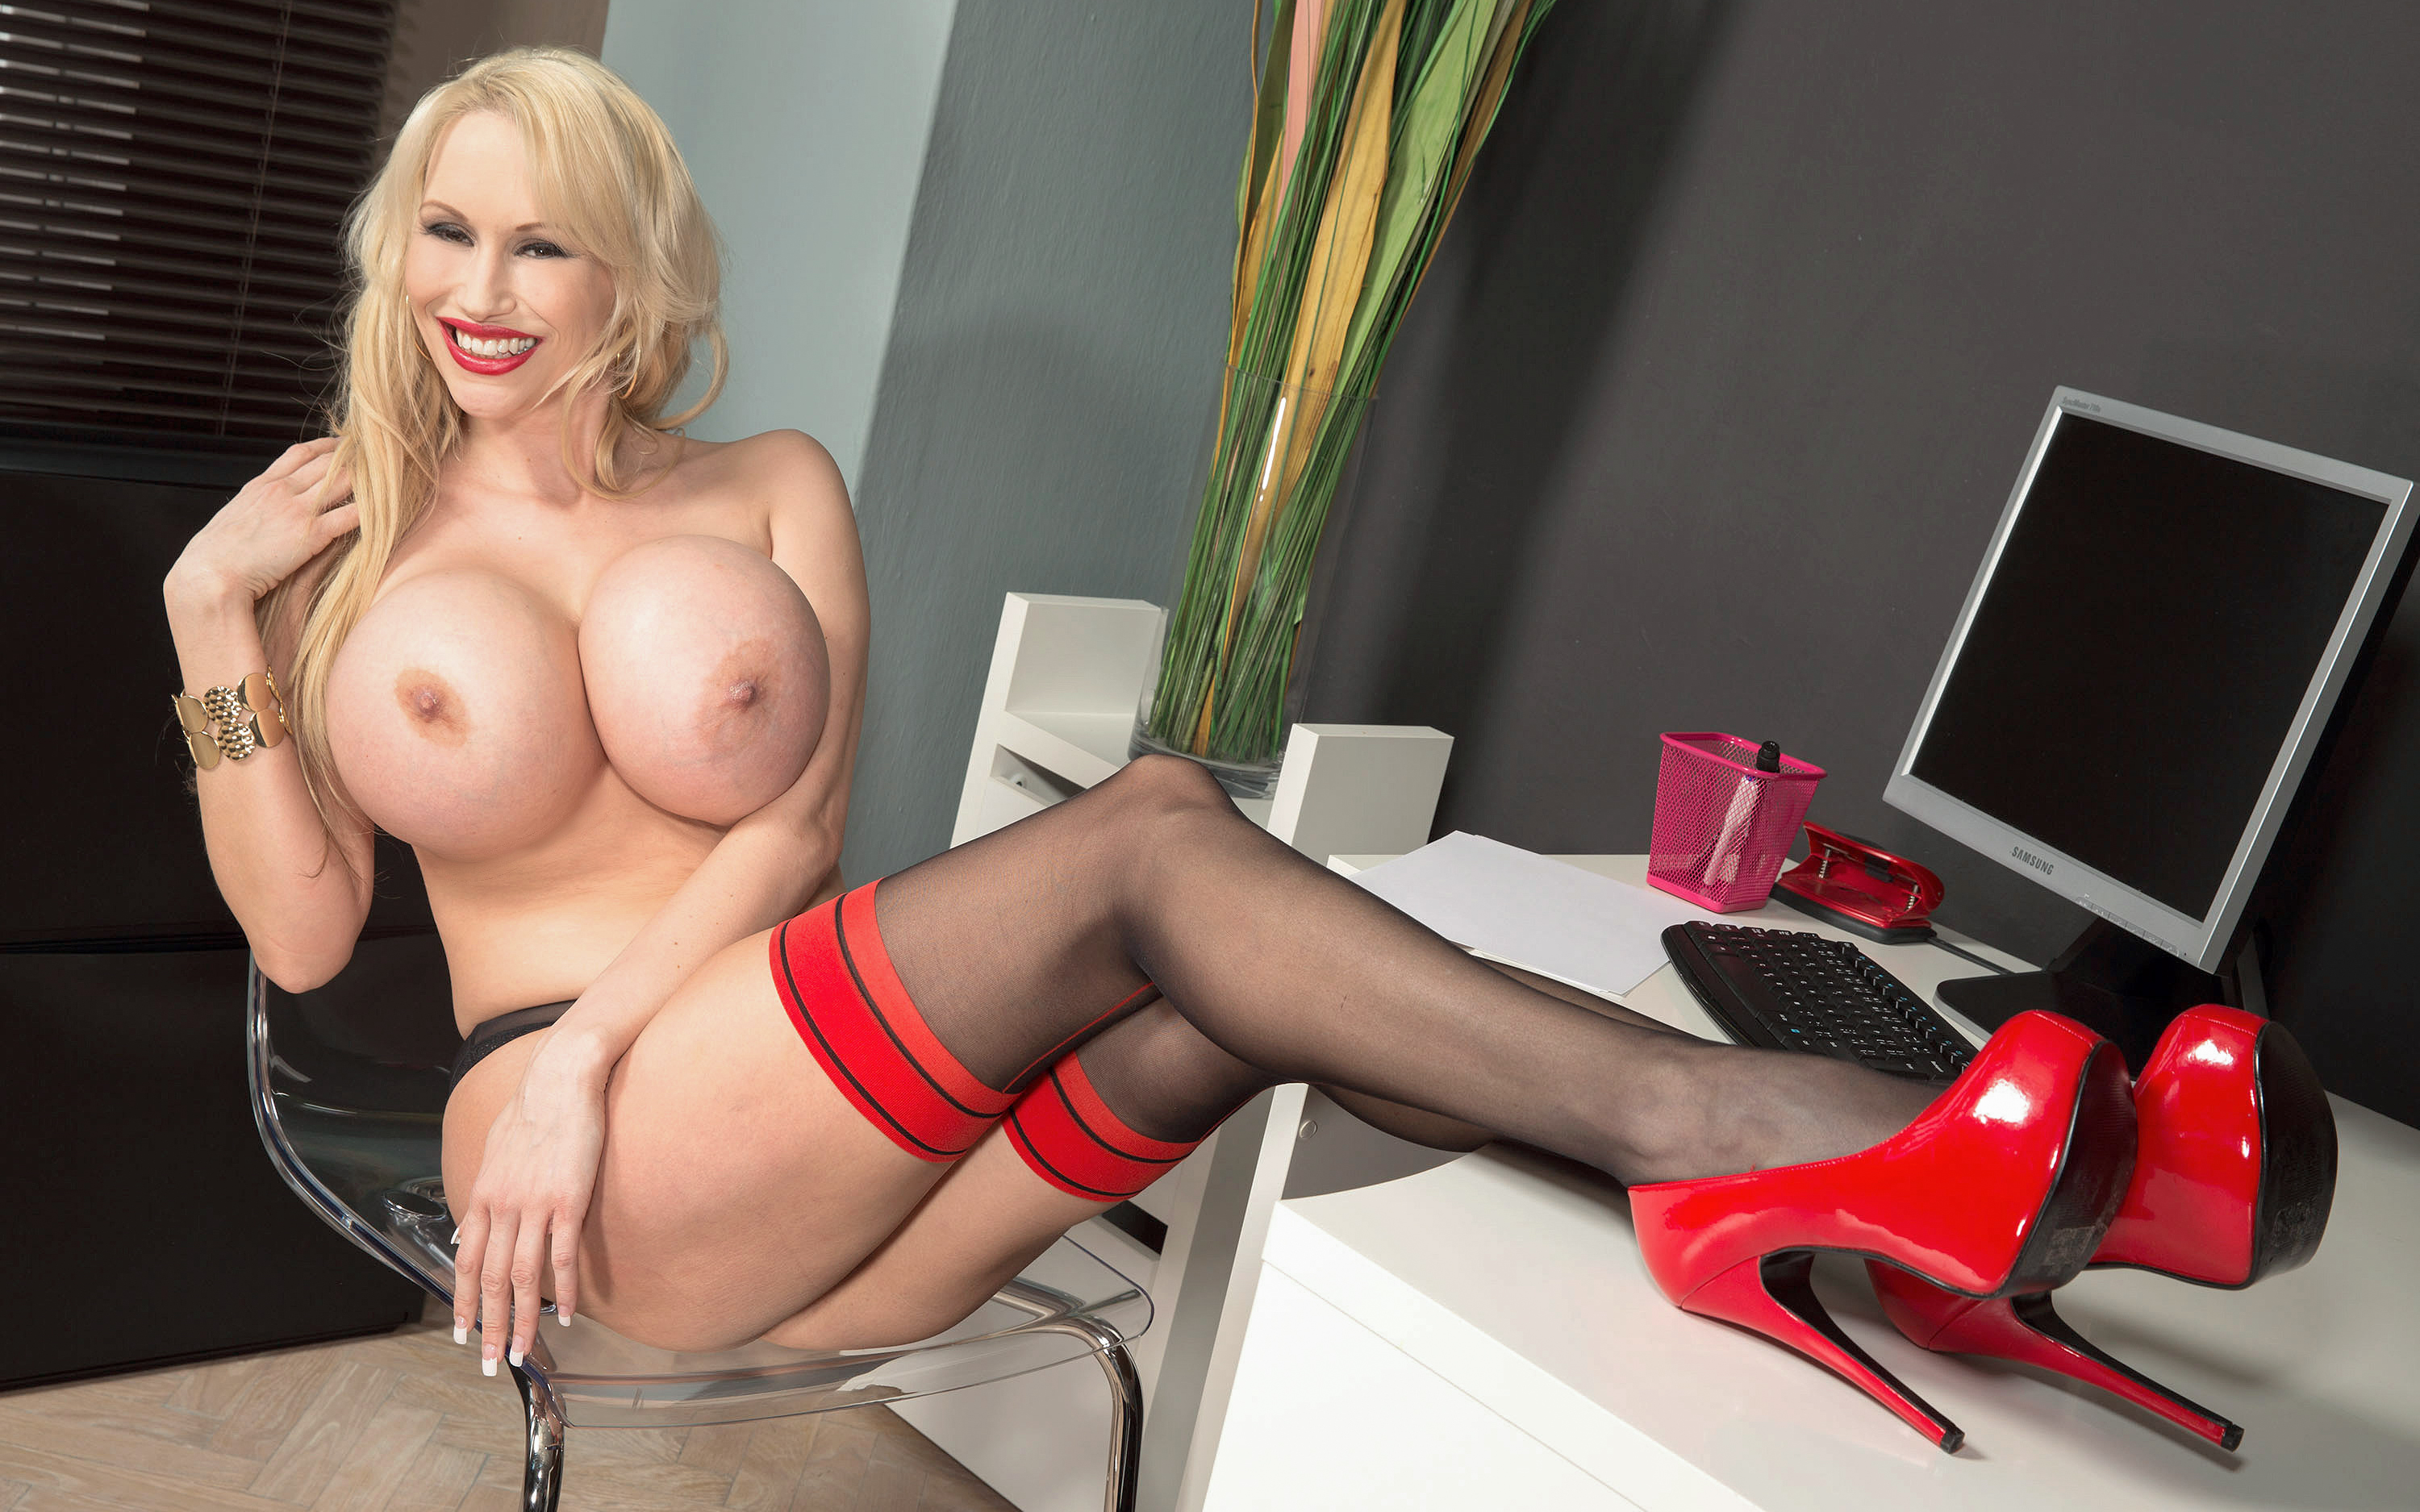 Big tits red stockings have